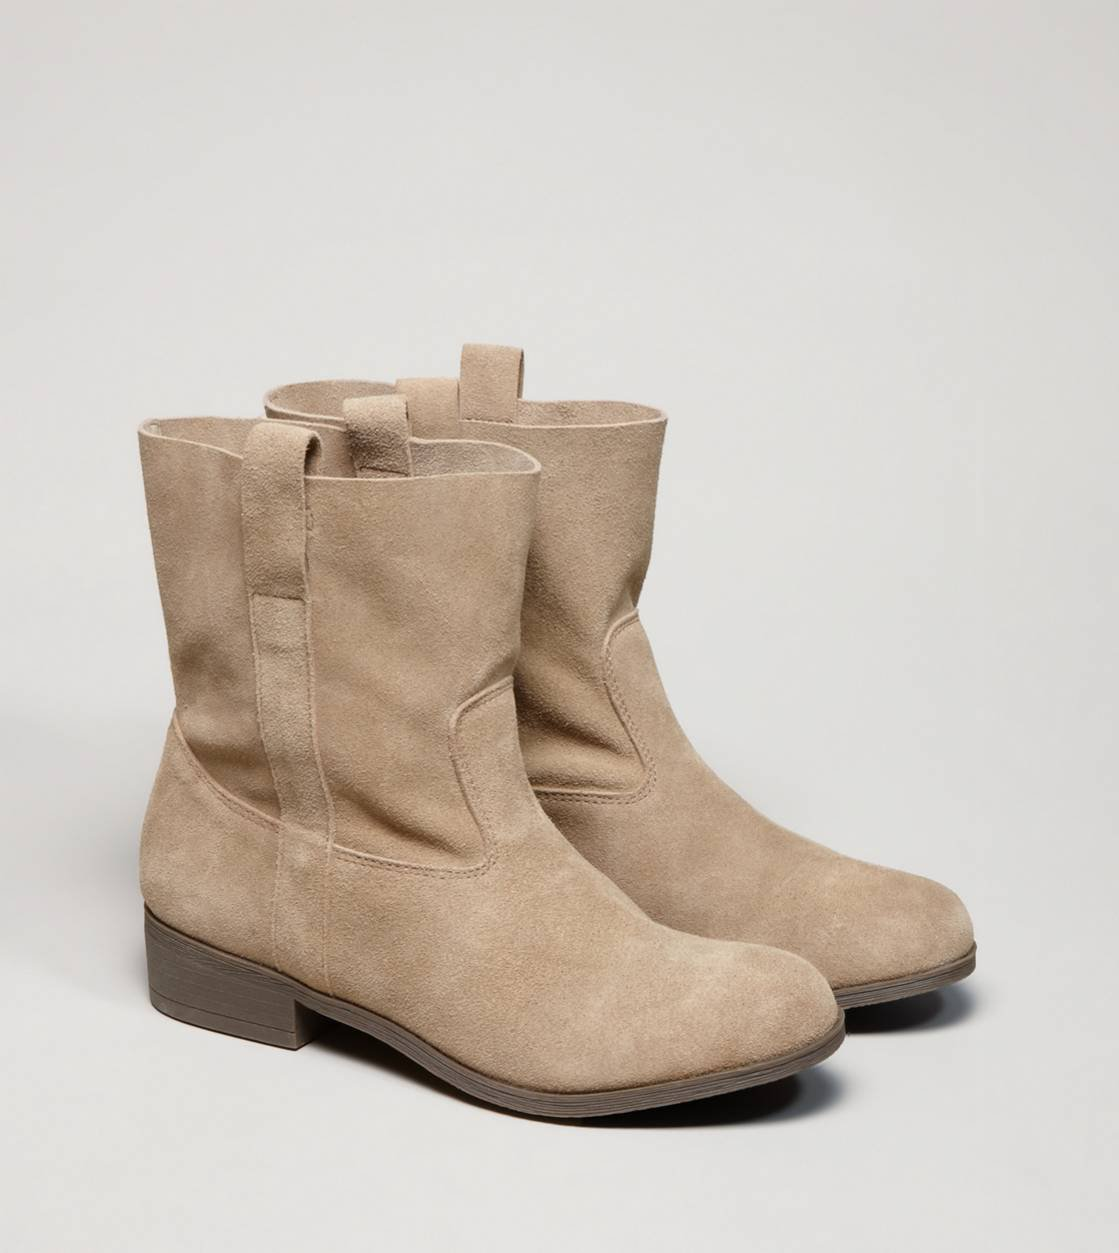 aeo slouchy suede boot american eagle from american eagle